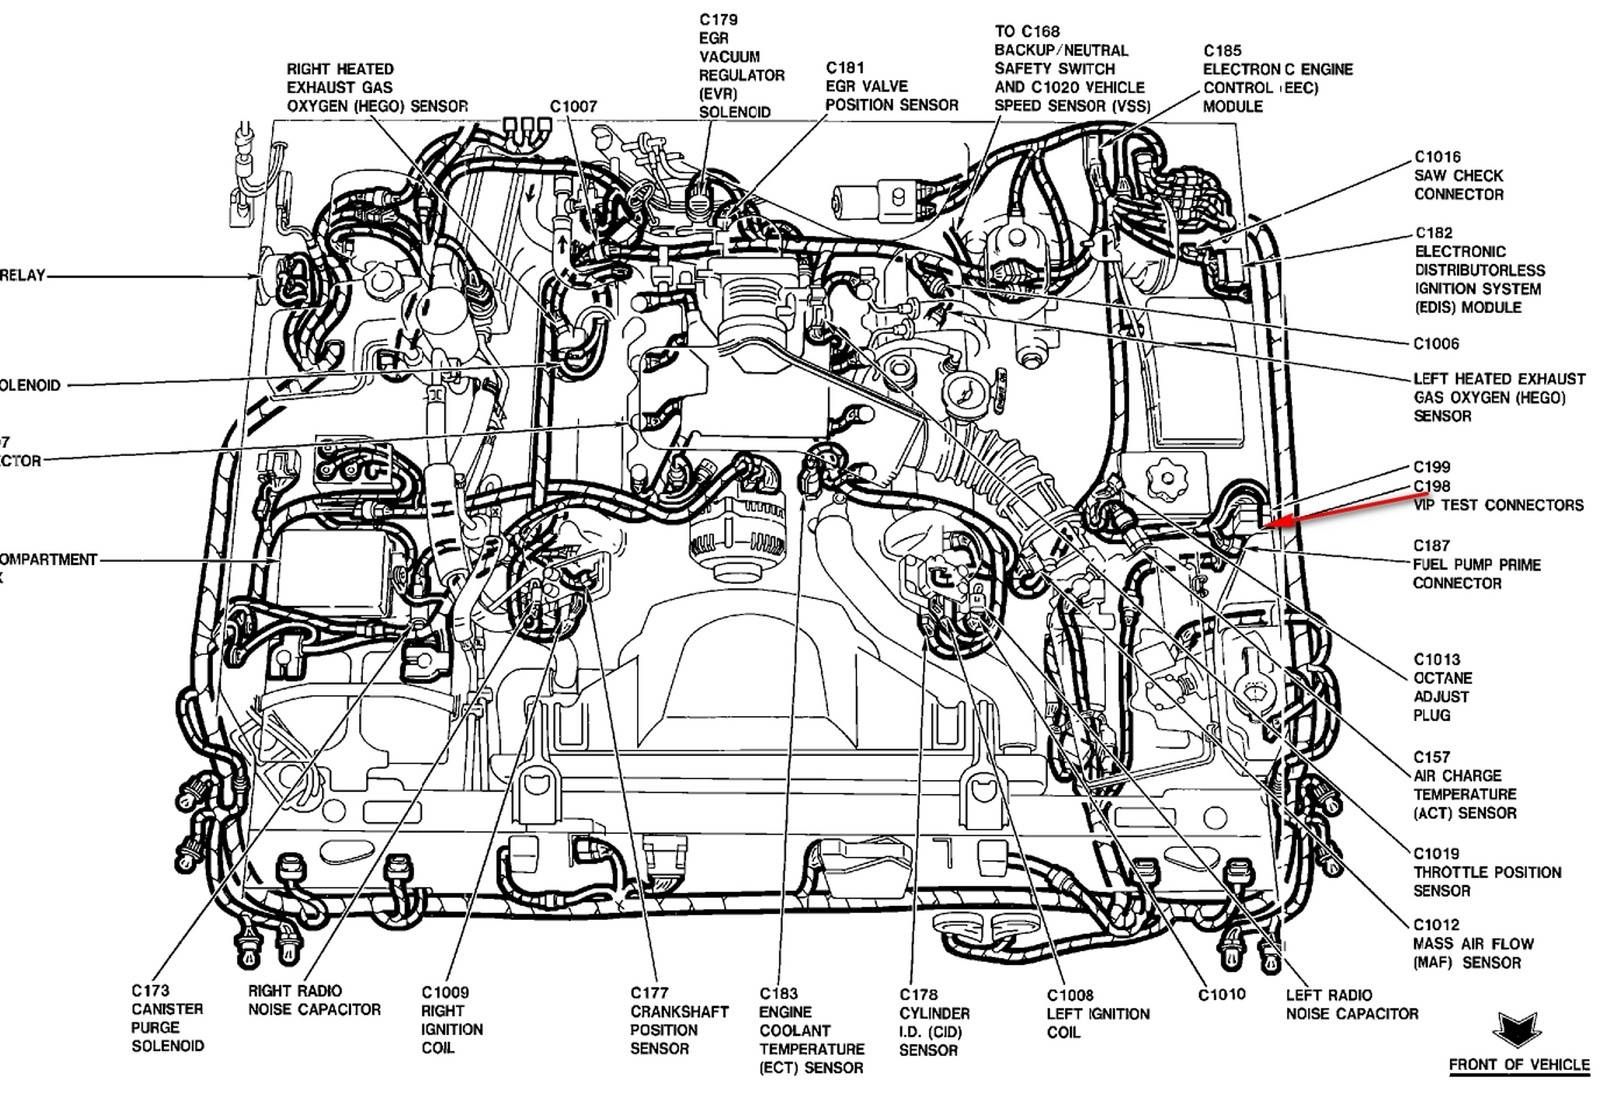 Discussion T29372 ds554767 on lincoln town car alternator wiring diagram